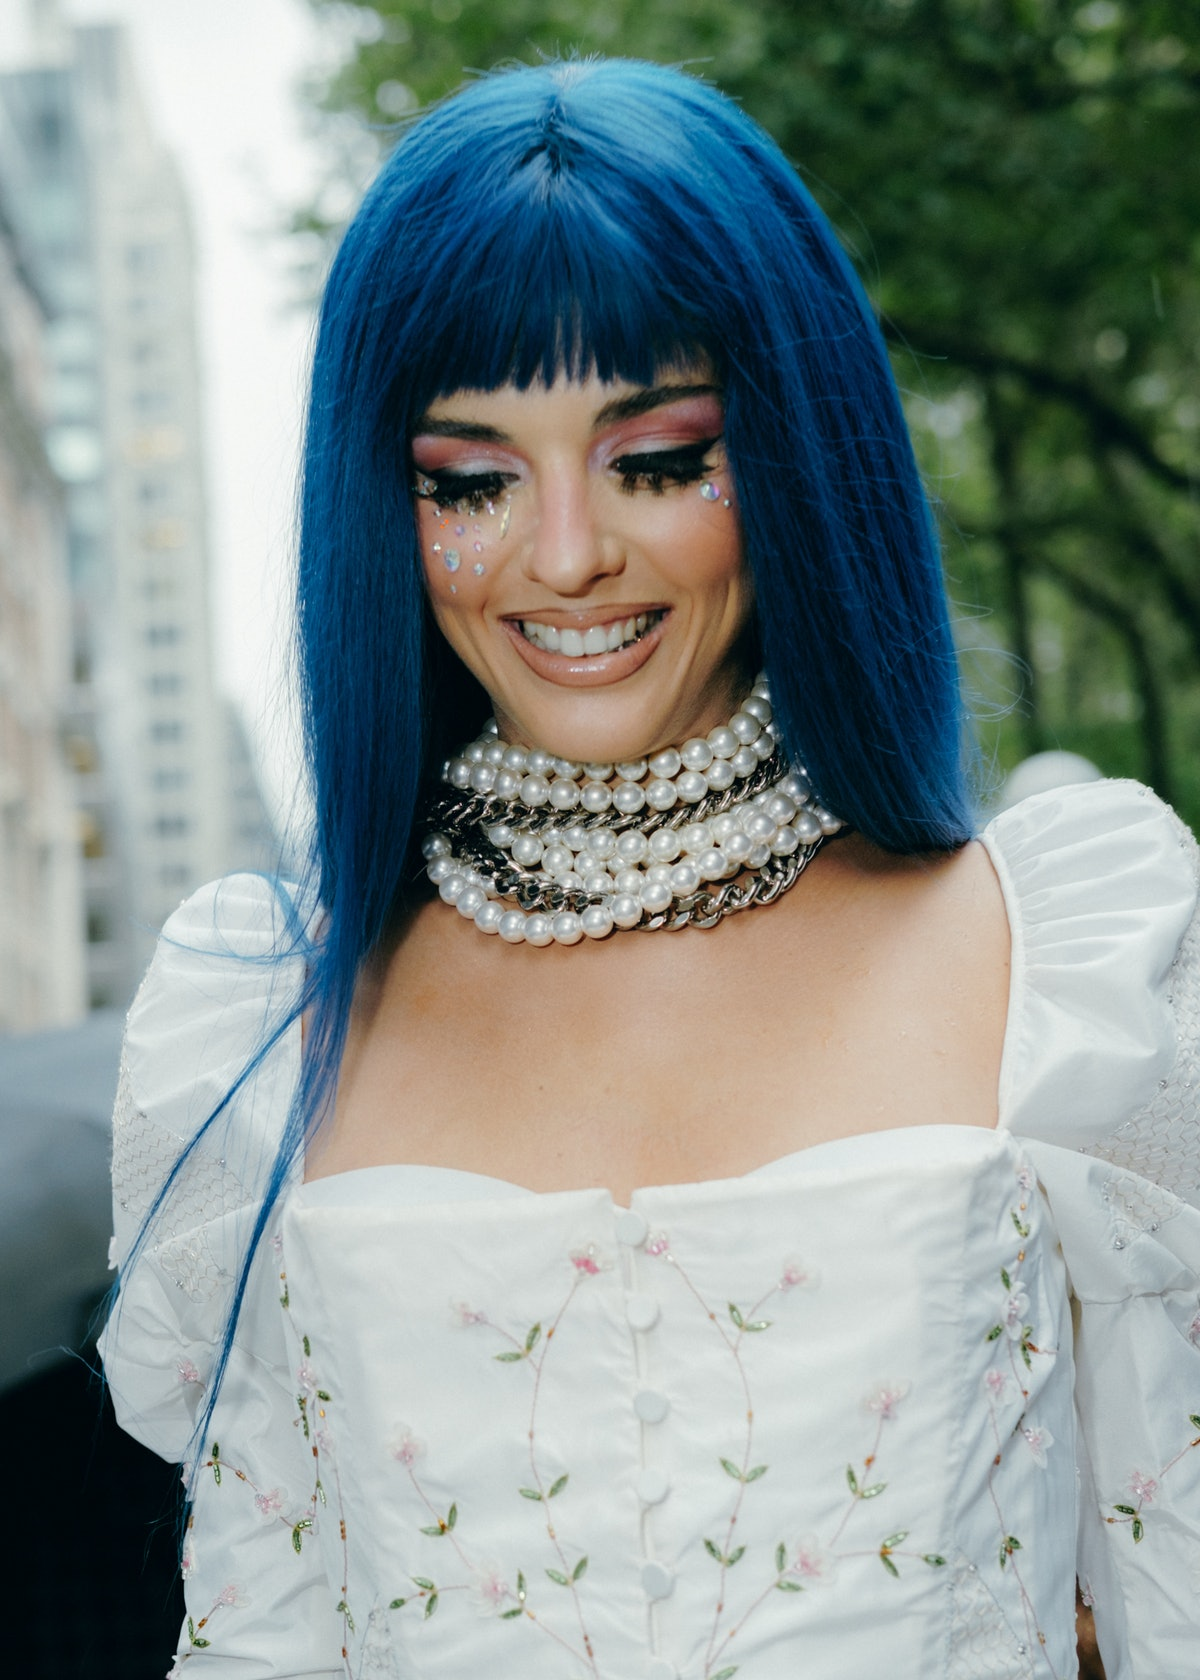 The woman wears blue hair and a lot of pearl necklaces.